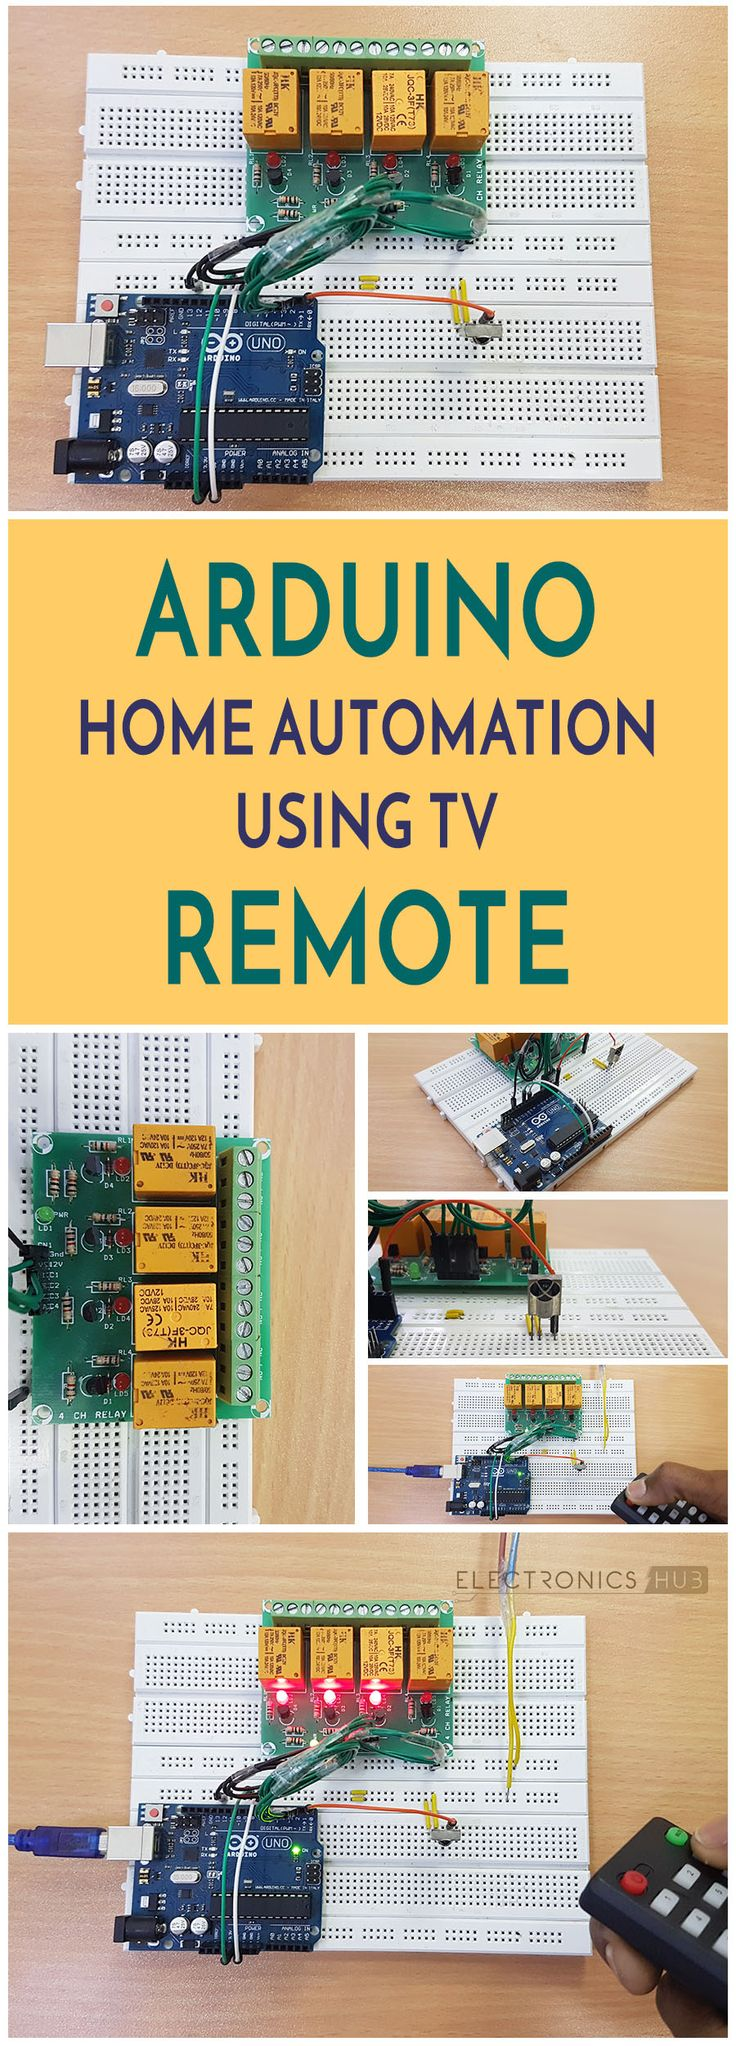 8 Best Saw Images On Pinterest Arduino Cnc Projects And Dtmf Decoder Ic Working Electronic Circuits Youtube Based Home Automation Using Tv Remote